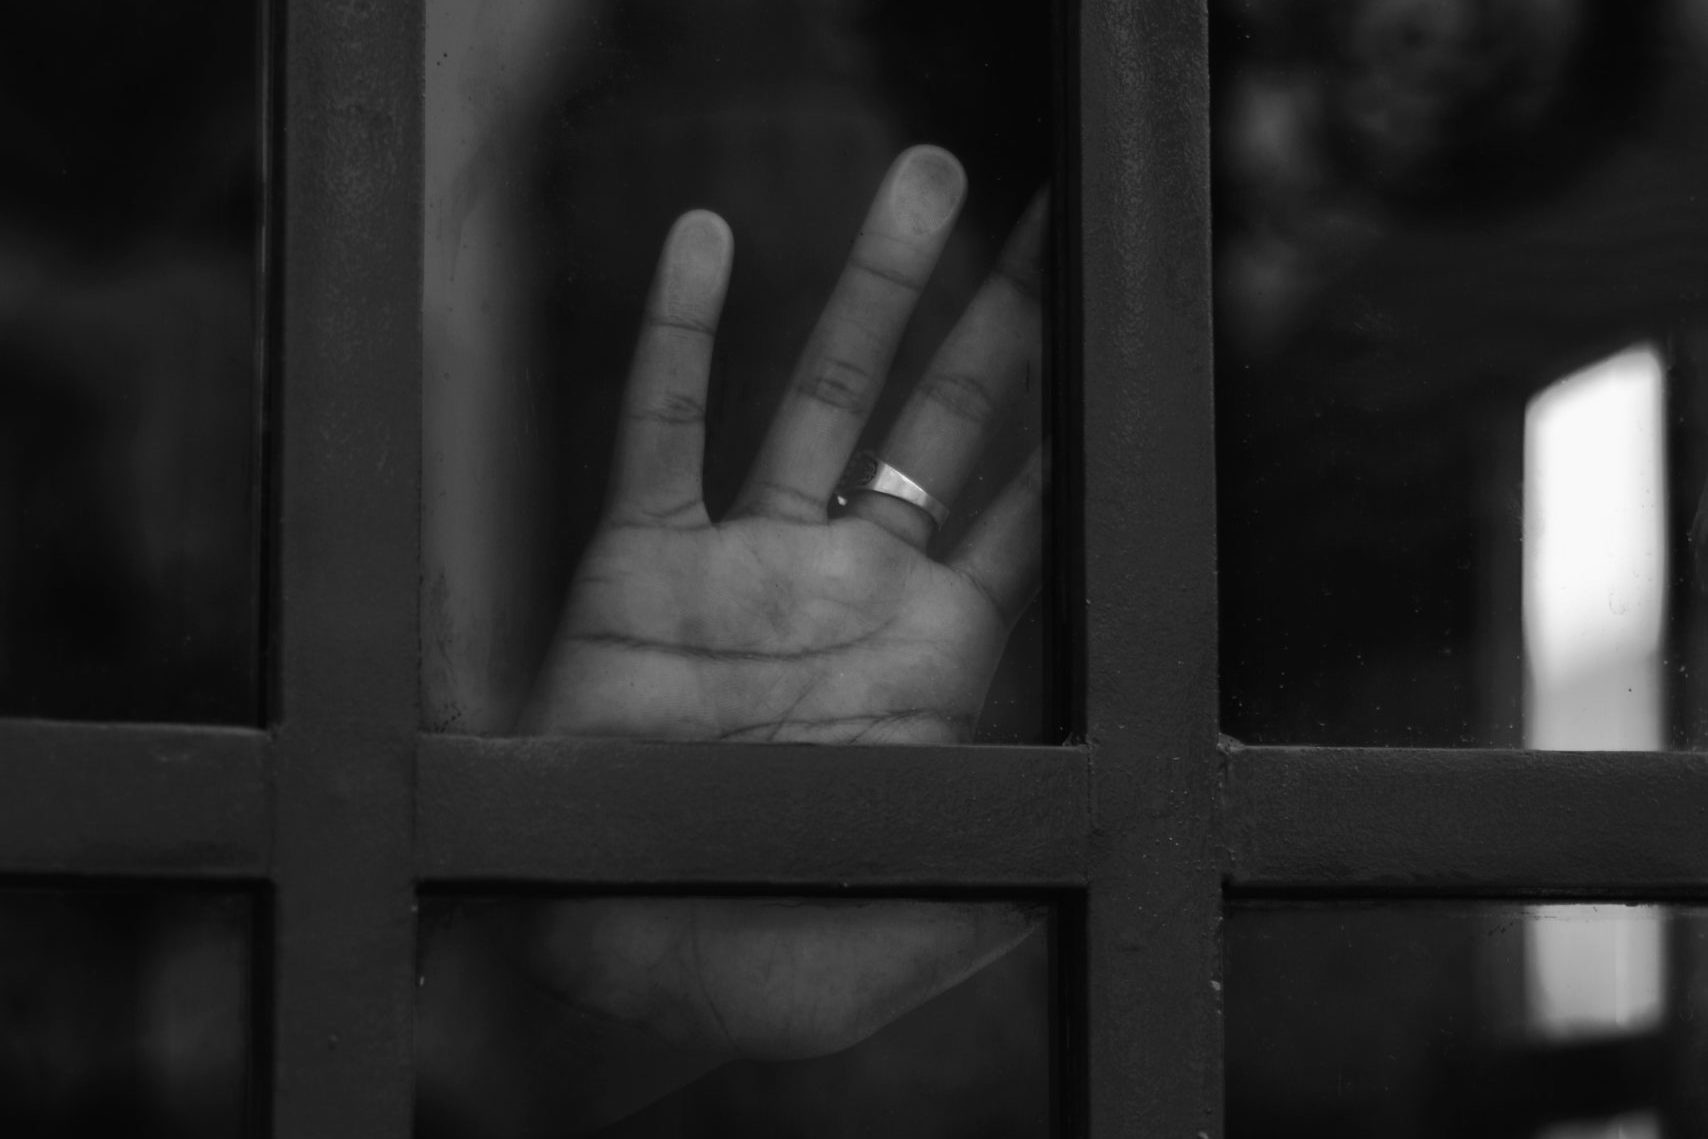 grayscale photo of persons hand on window